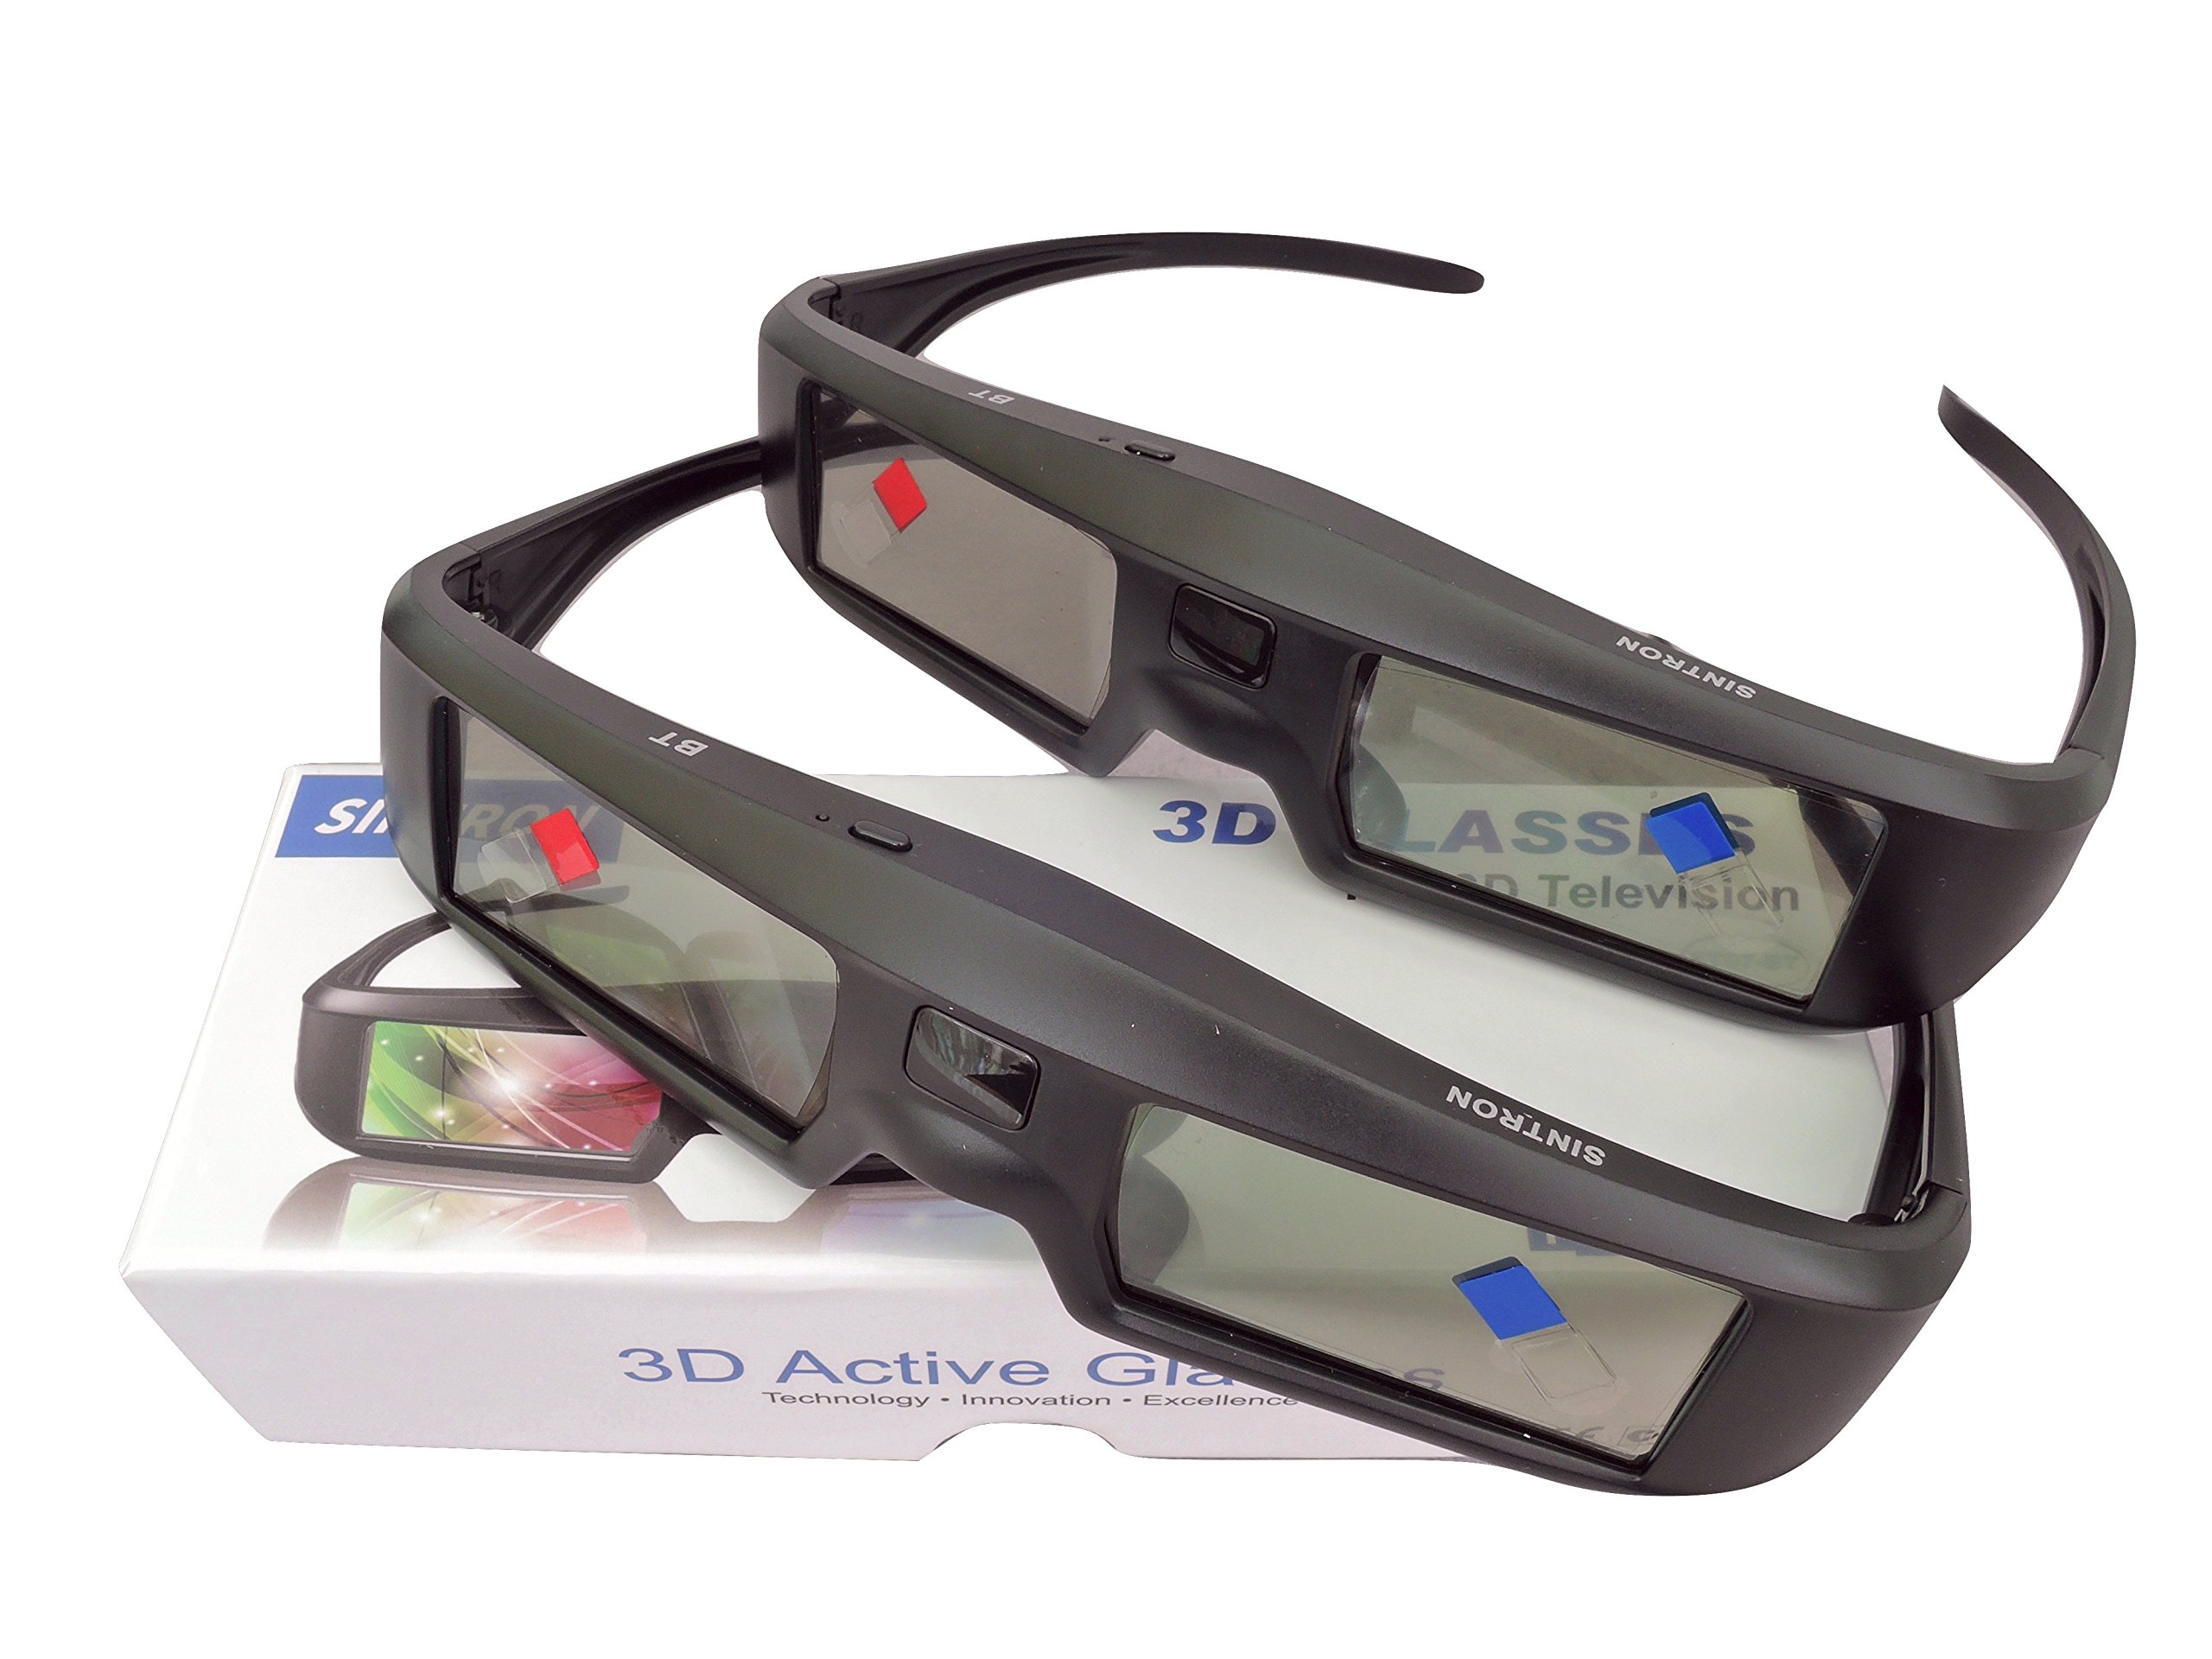 2X 3D Active Shutter Glasses Rechargeable - Sintron ST07-BT for RF 3D TV, 3D Glasses for Sony, Panasonic, Samsung 3D TV, Epson 3D projector, Compatible with TDG-BT500A TDG-BT400A TY-ER3D5MA TY-ER3D4MA by Sintron